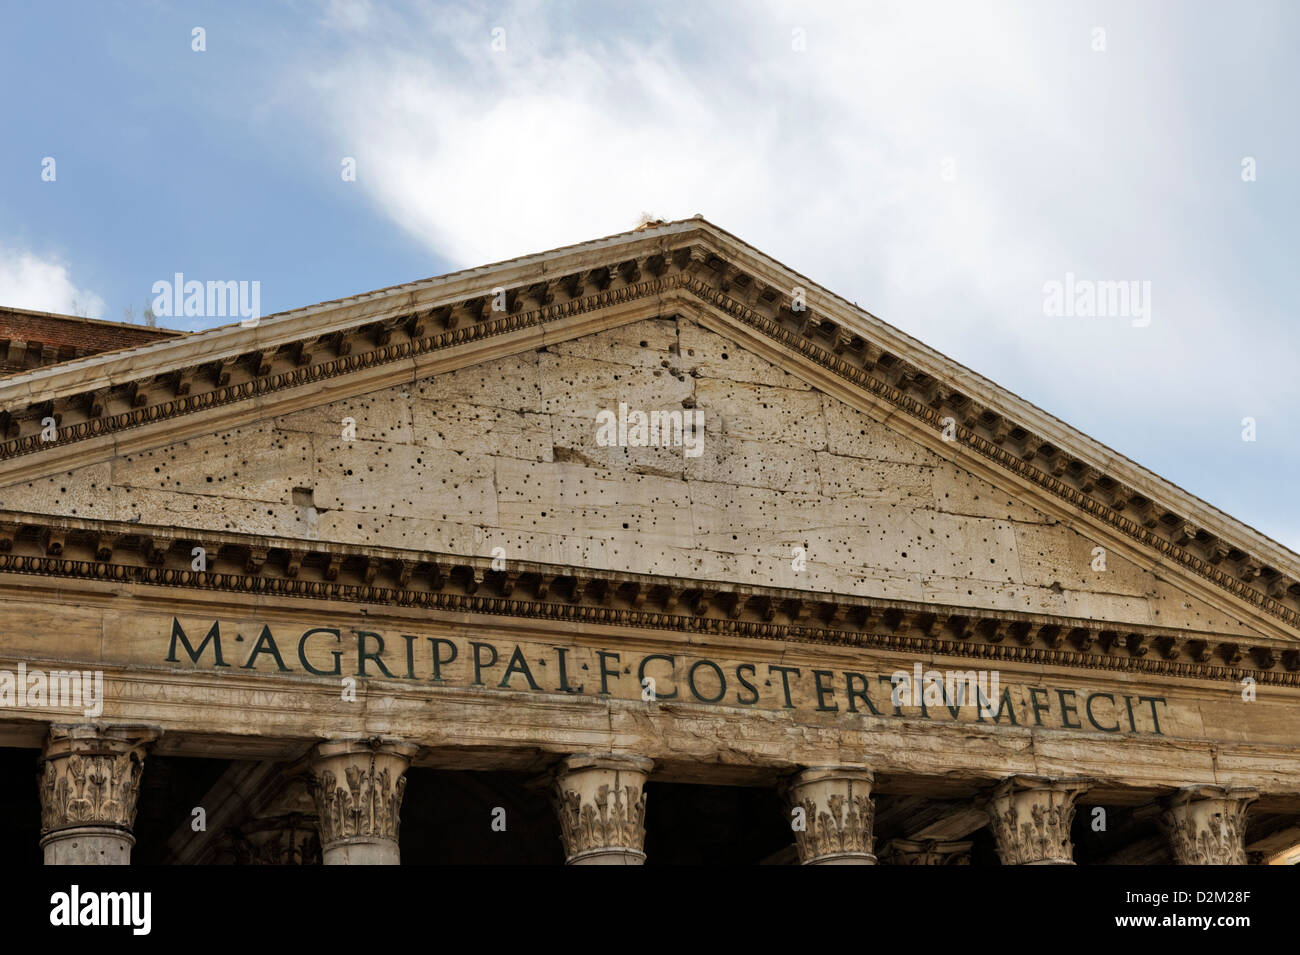 Rome. Italy. View of the grandiose granite columned portico and pediment of the Pantheon, an architectural masterpiece. Stock Photo